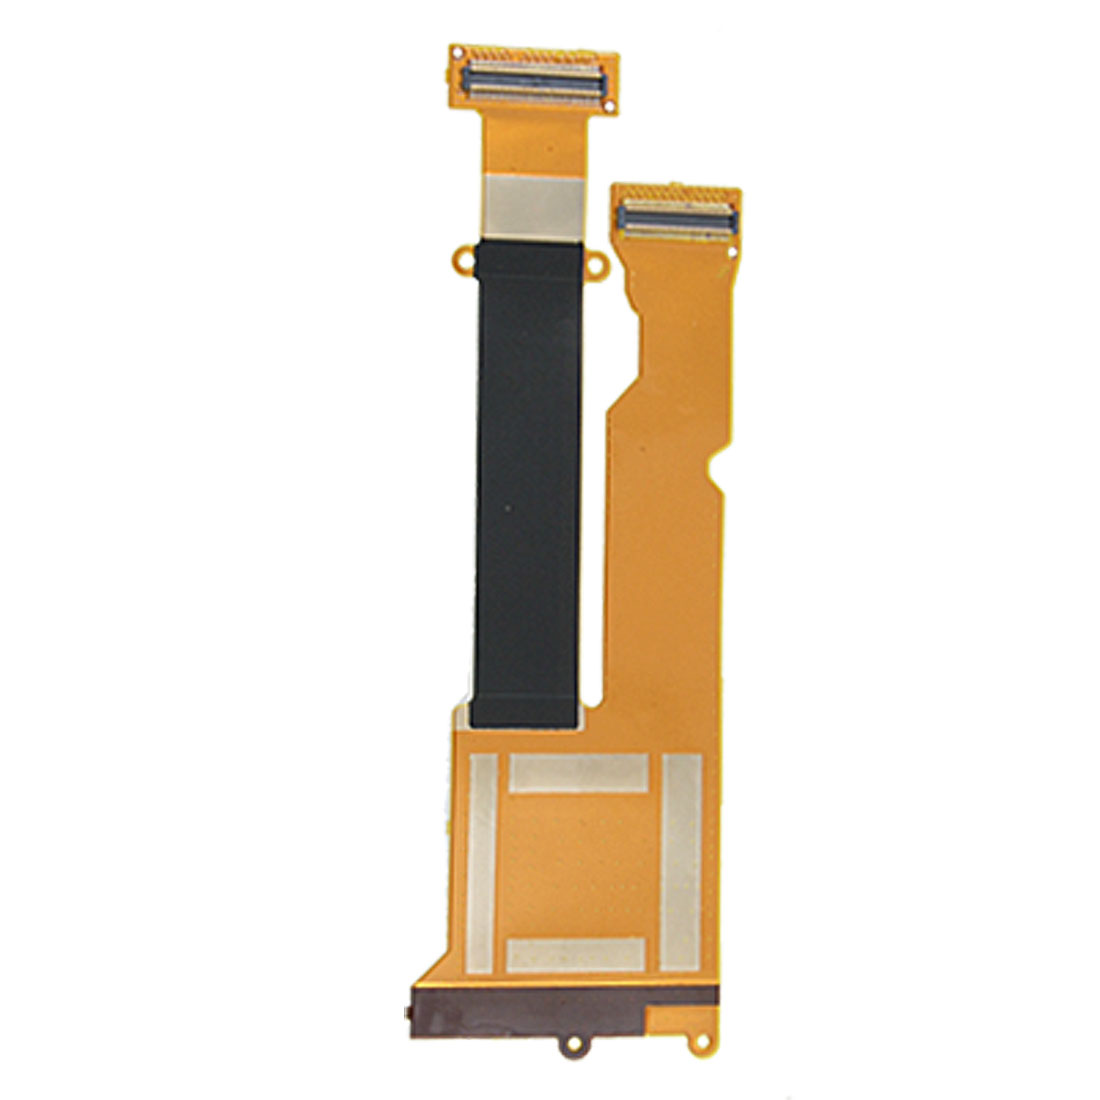 Phone Repair Parts LCD Flex Flat Ribbon Cable for LG GM210